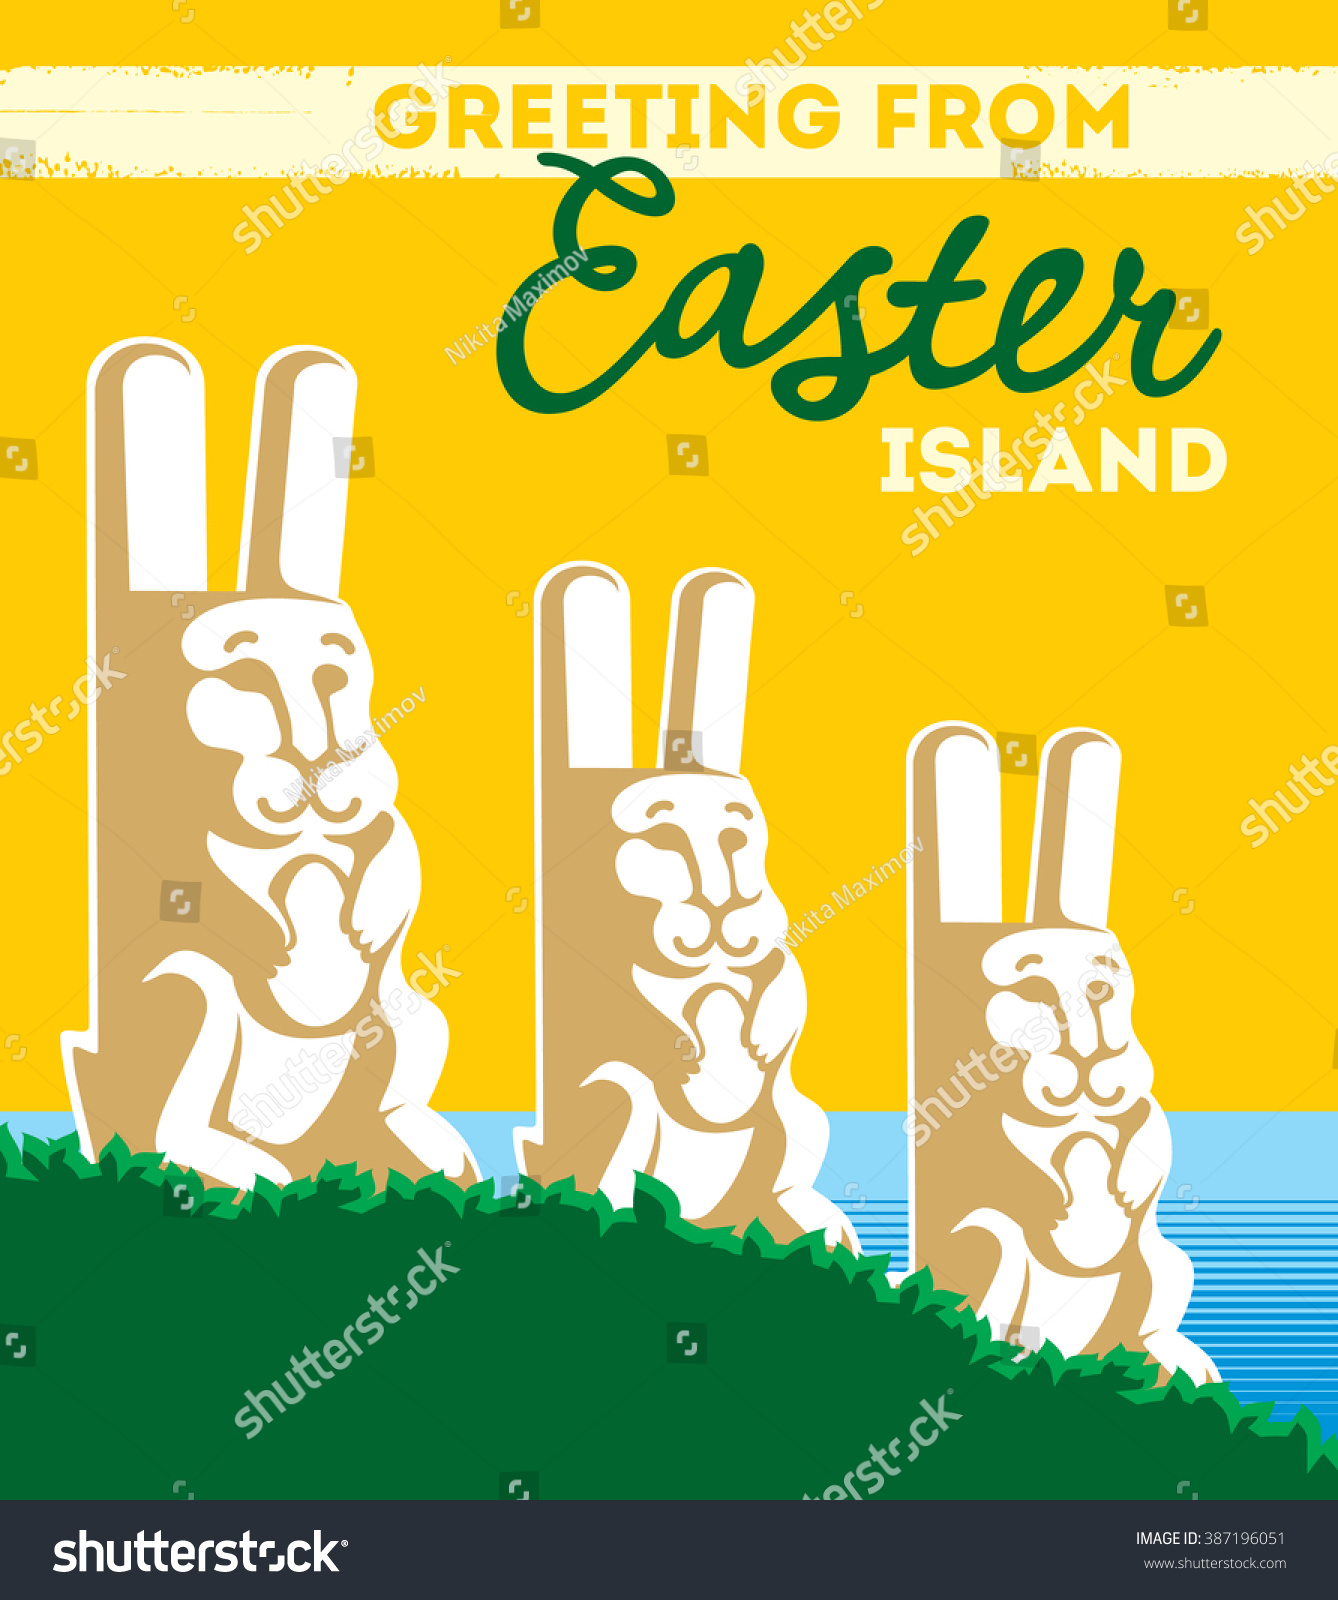 Greeting card easter island stock vector 387196051 shutterstock greeting card from easter island kristyandbryce Gallery